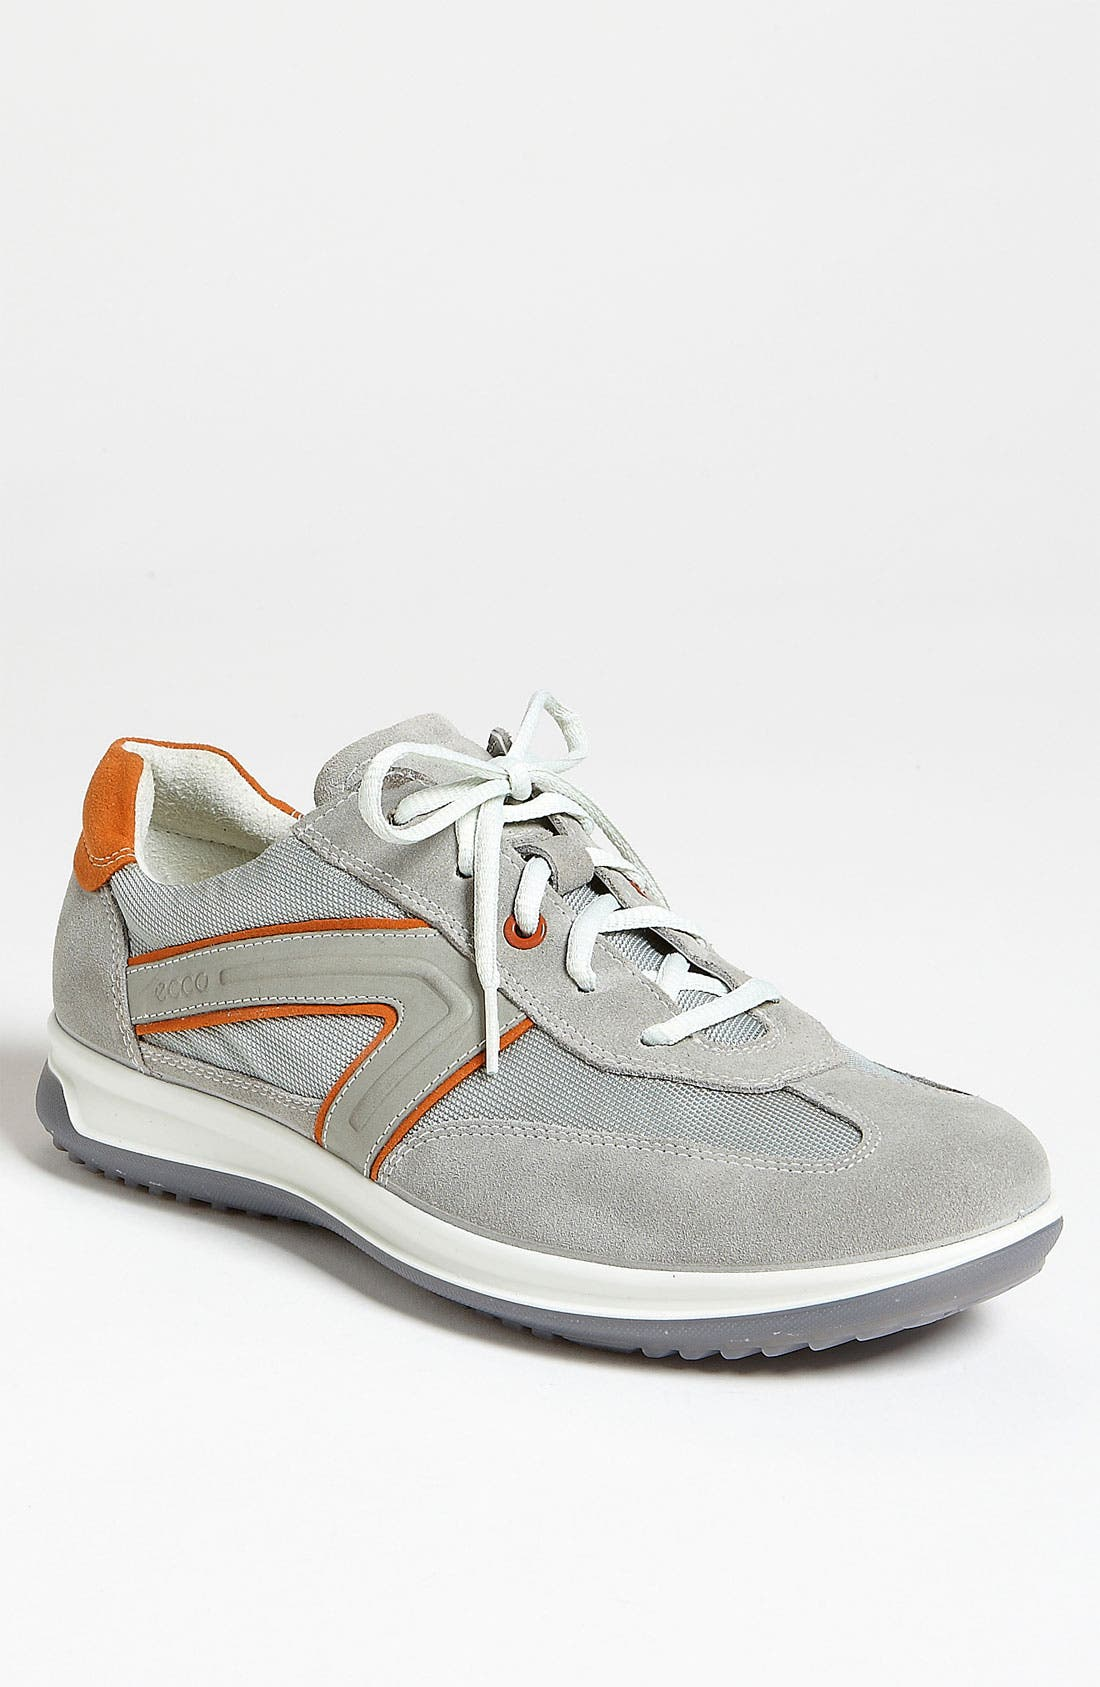 Alternate Image 1 Selected - ECCO 'Roadstar' Sneaker